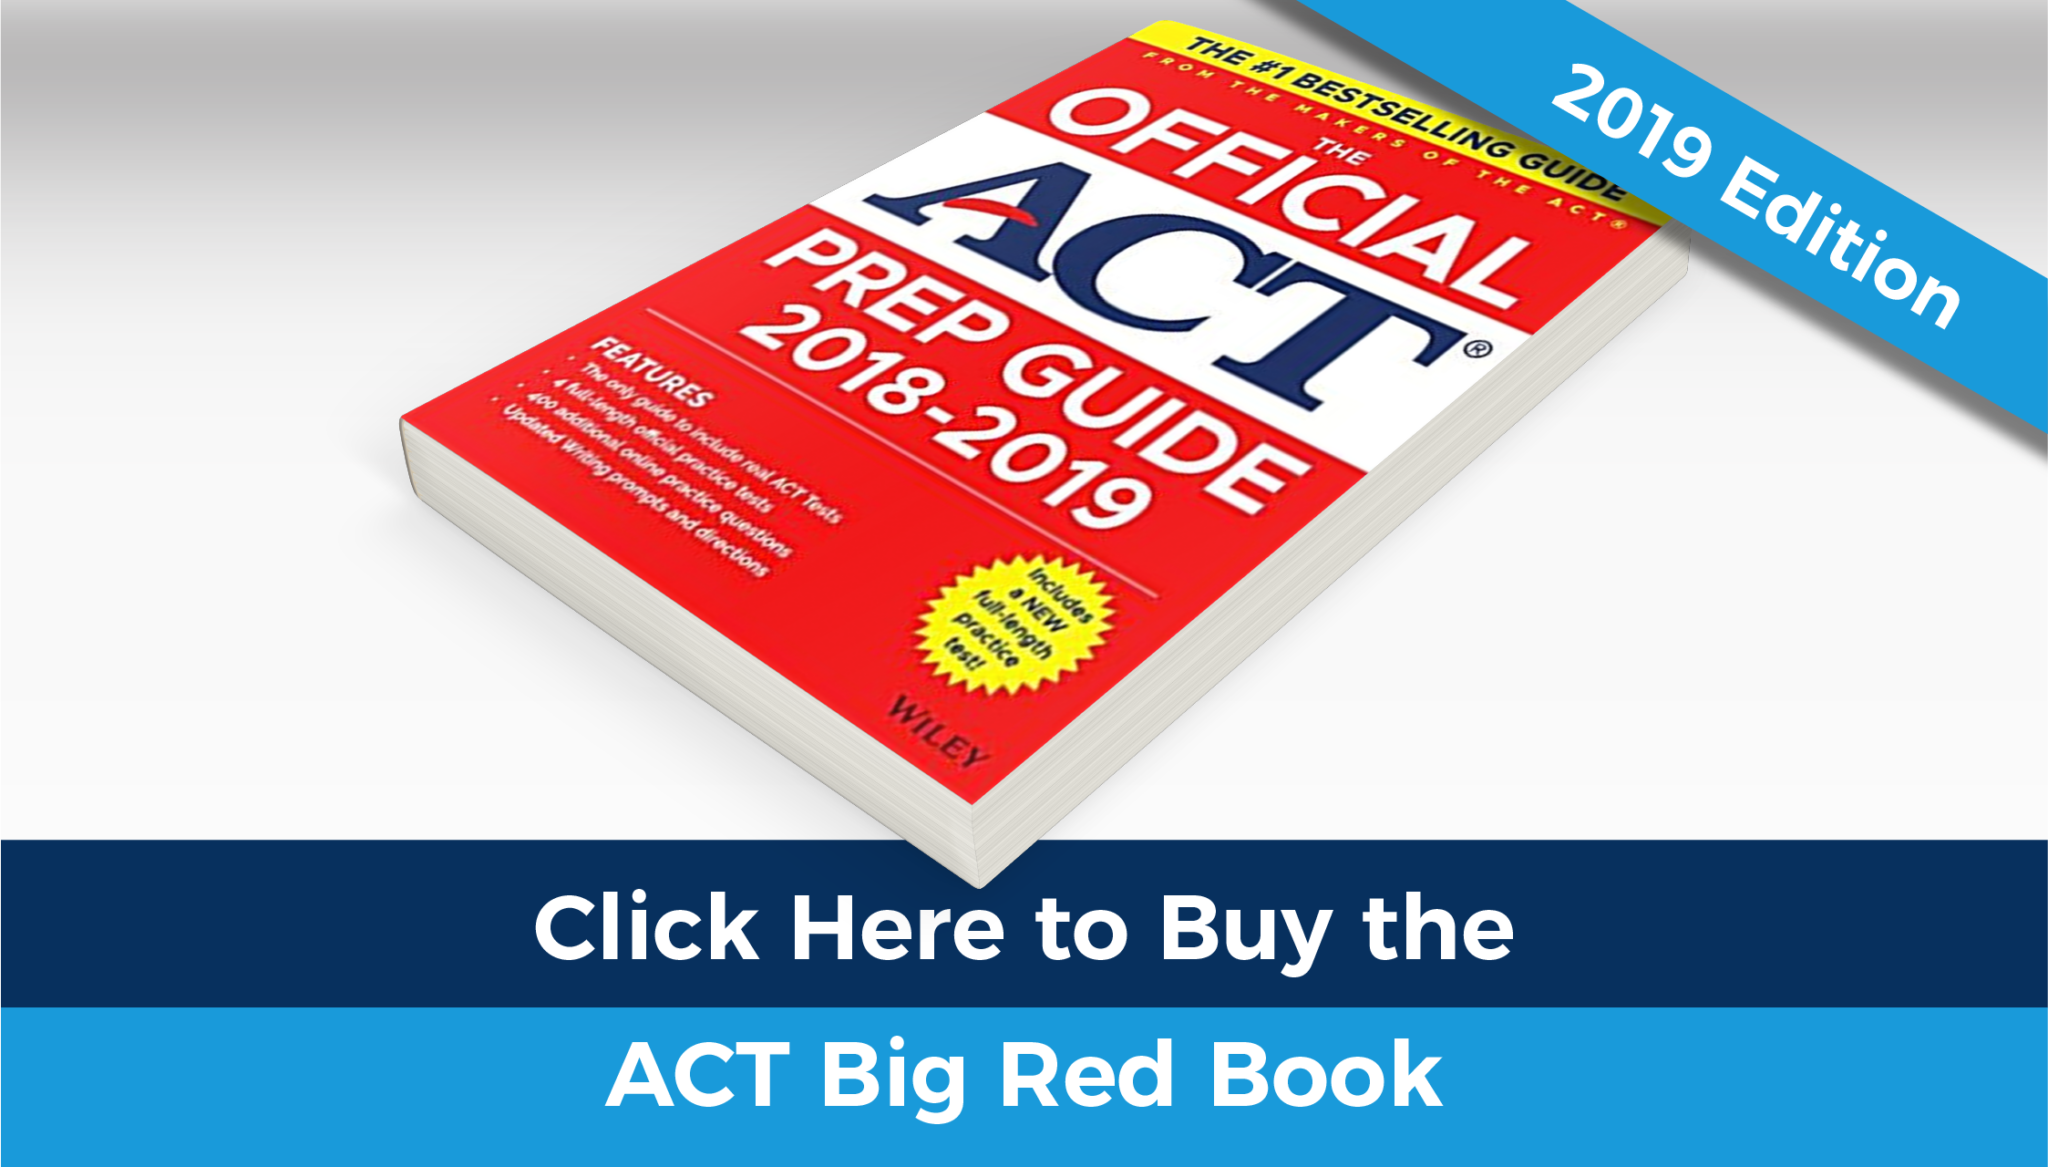 2019 ACT Big Red Book